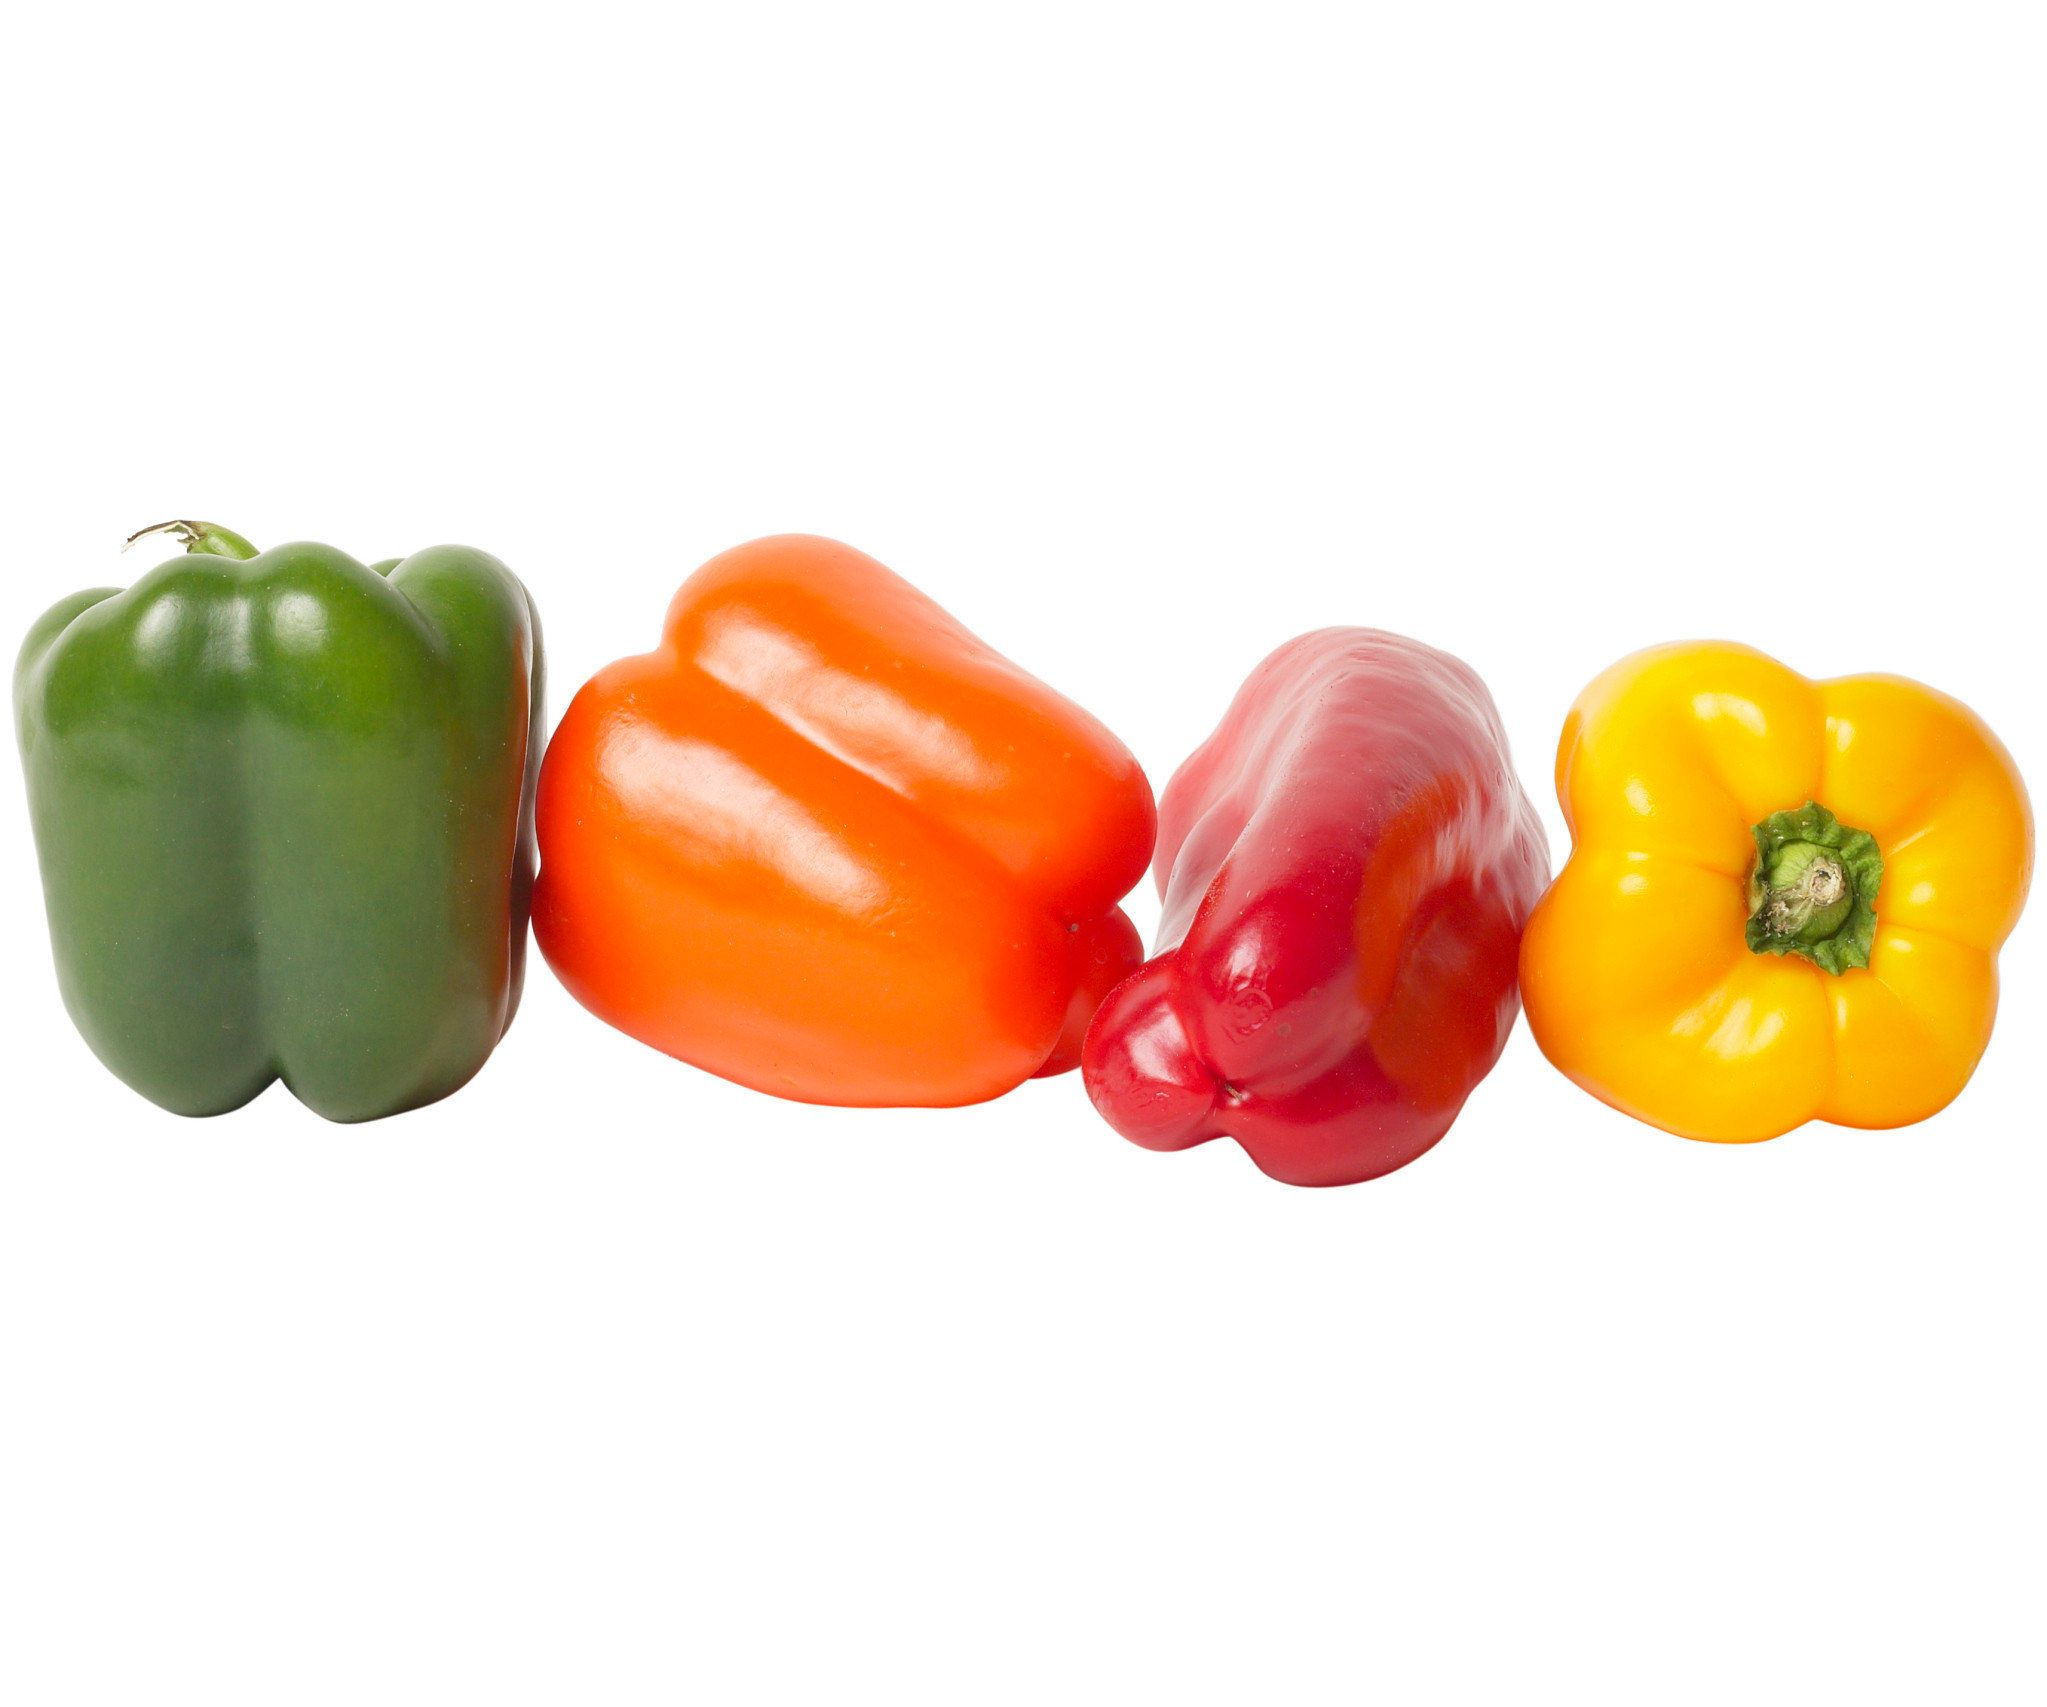 Green Bell Peppers Are Just Unripe Versions Of Red Peppers ...